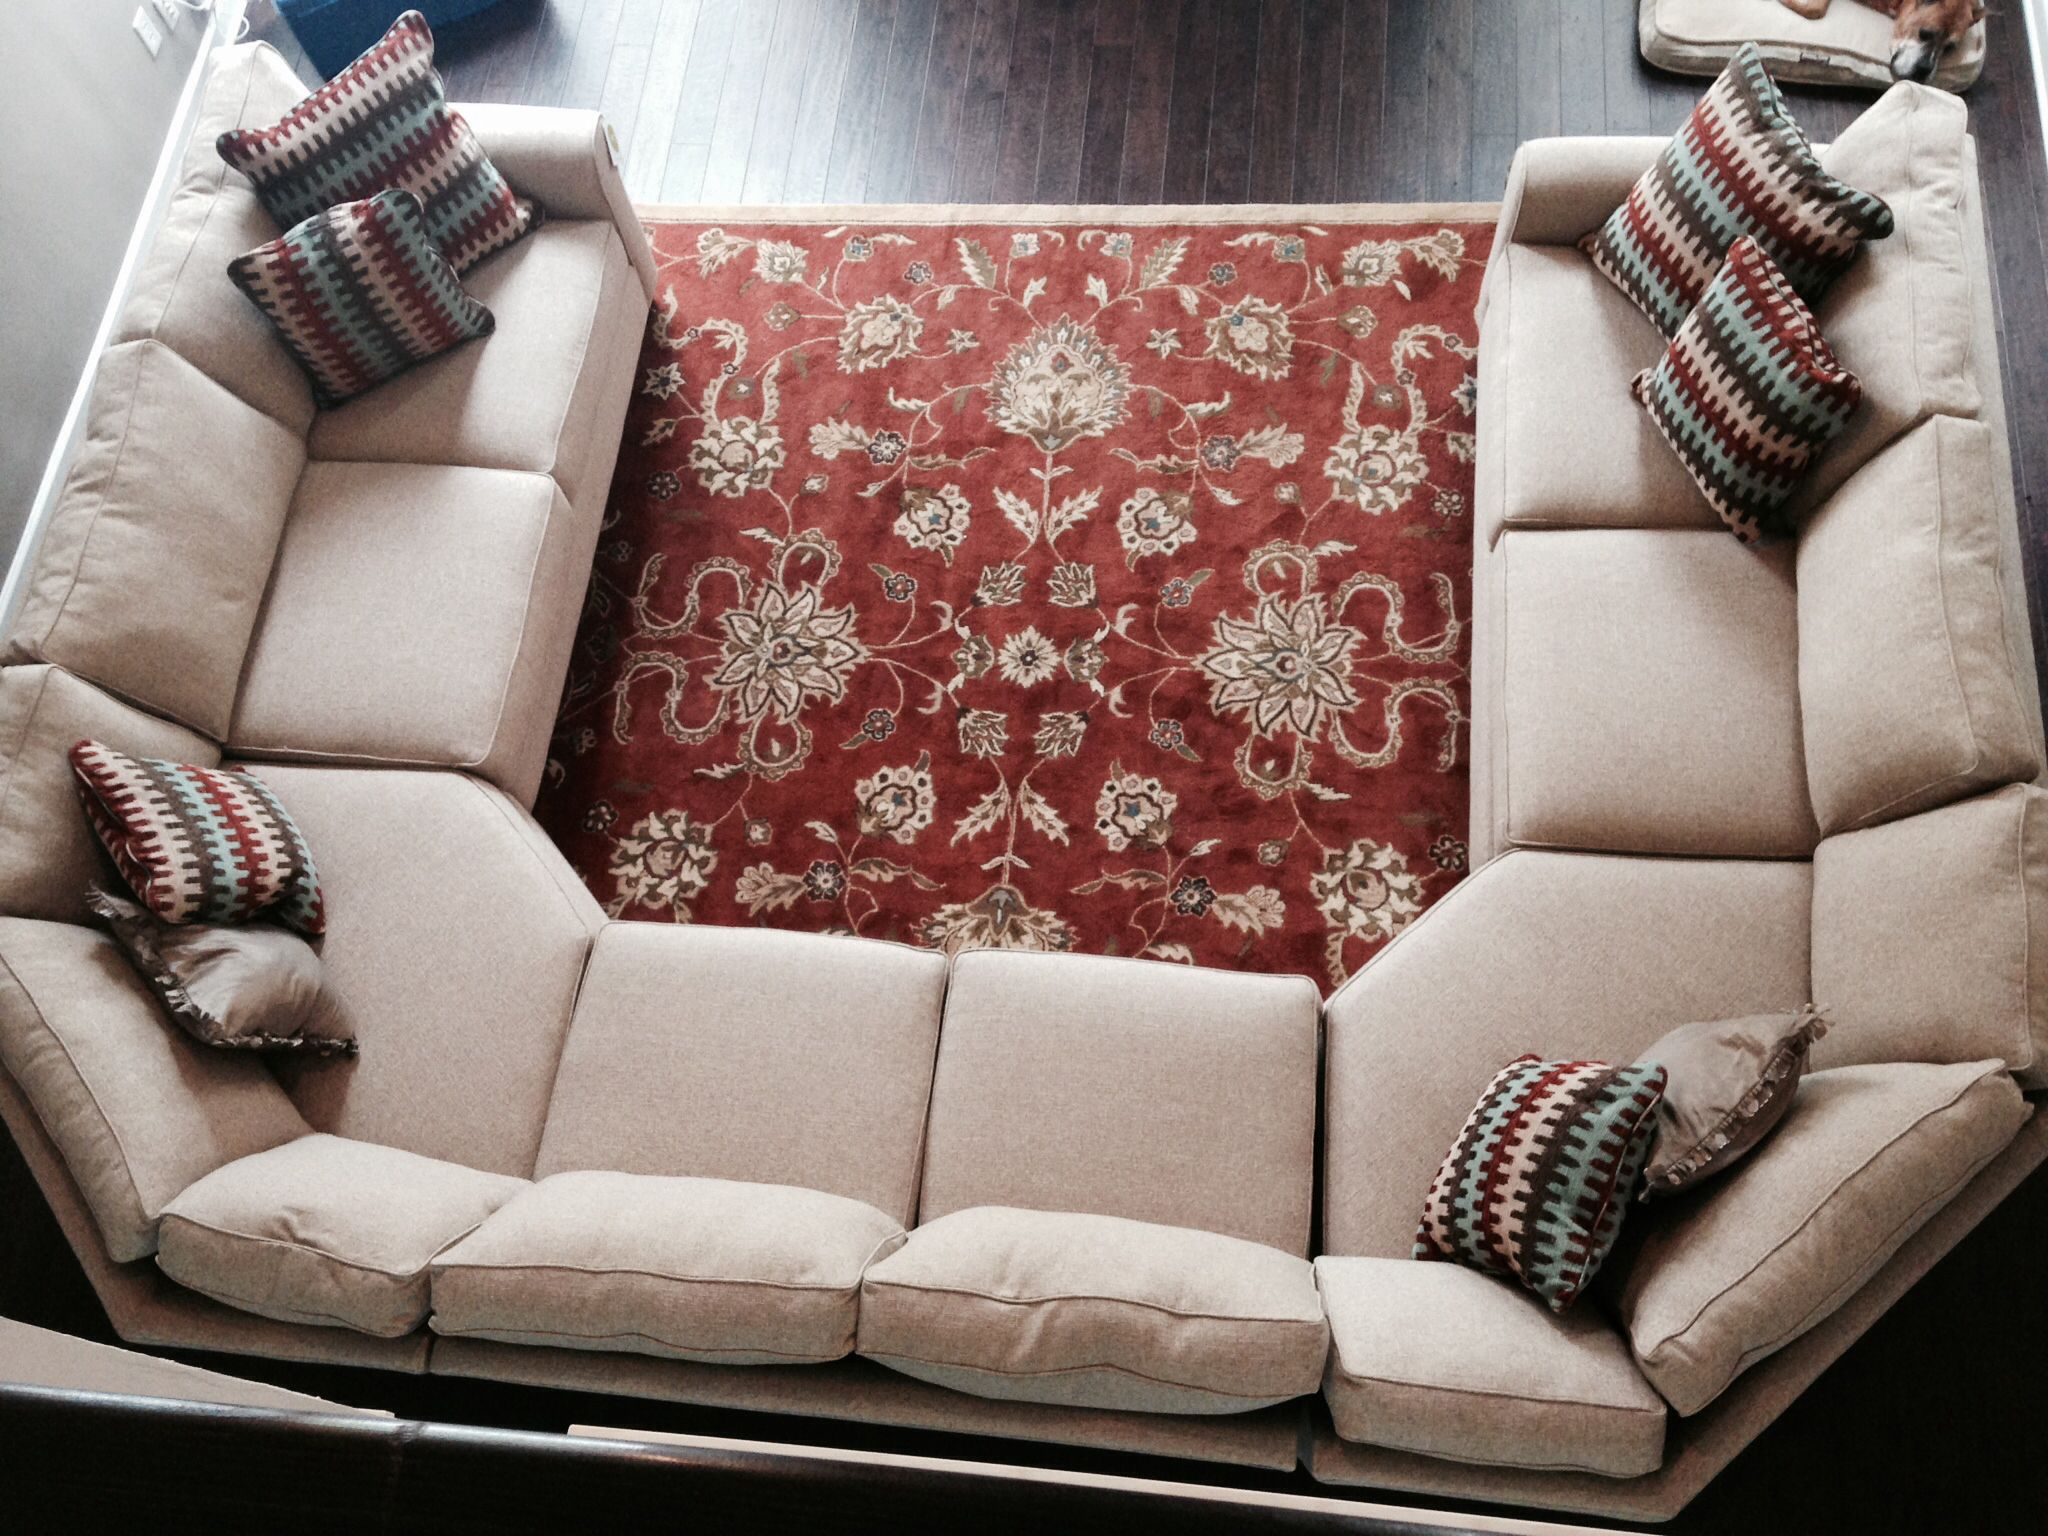 Our new sofa Inspired by the crate and barrel u shaped sectional but at a fraction of the